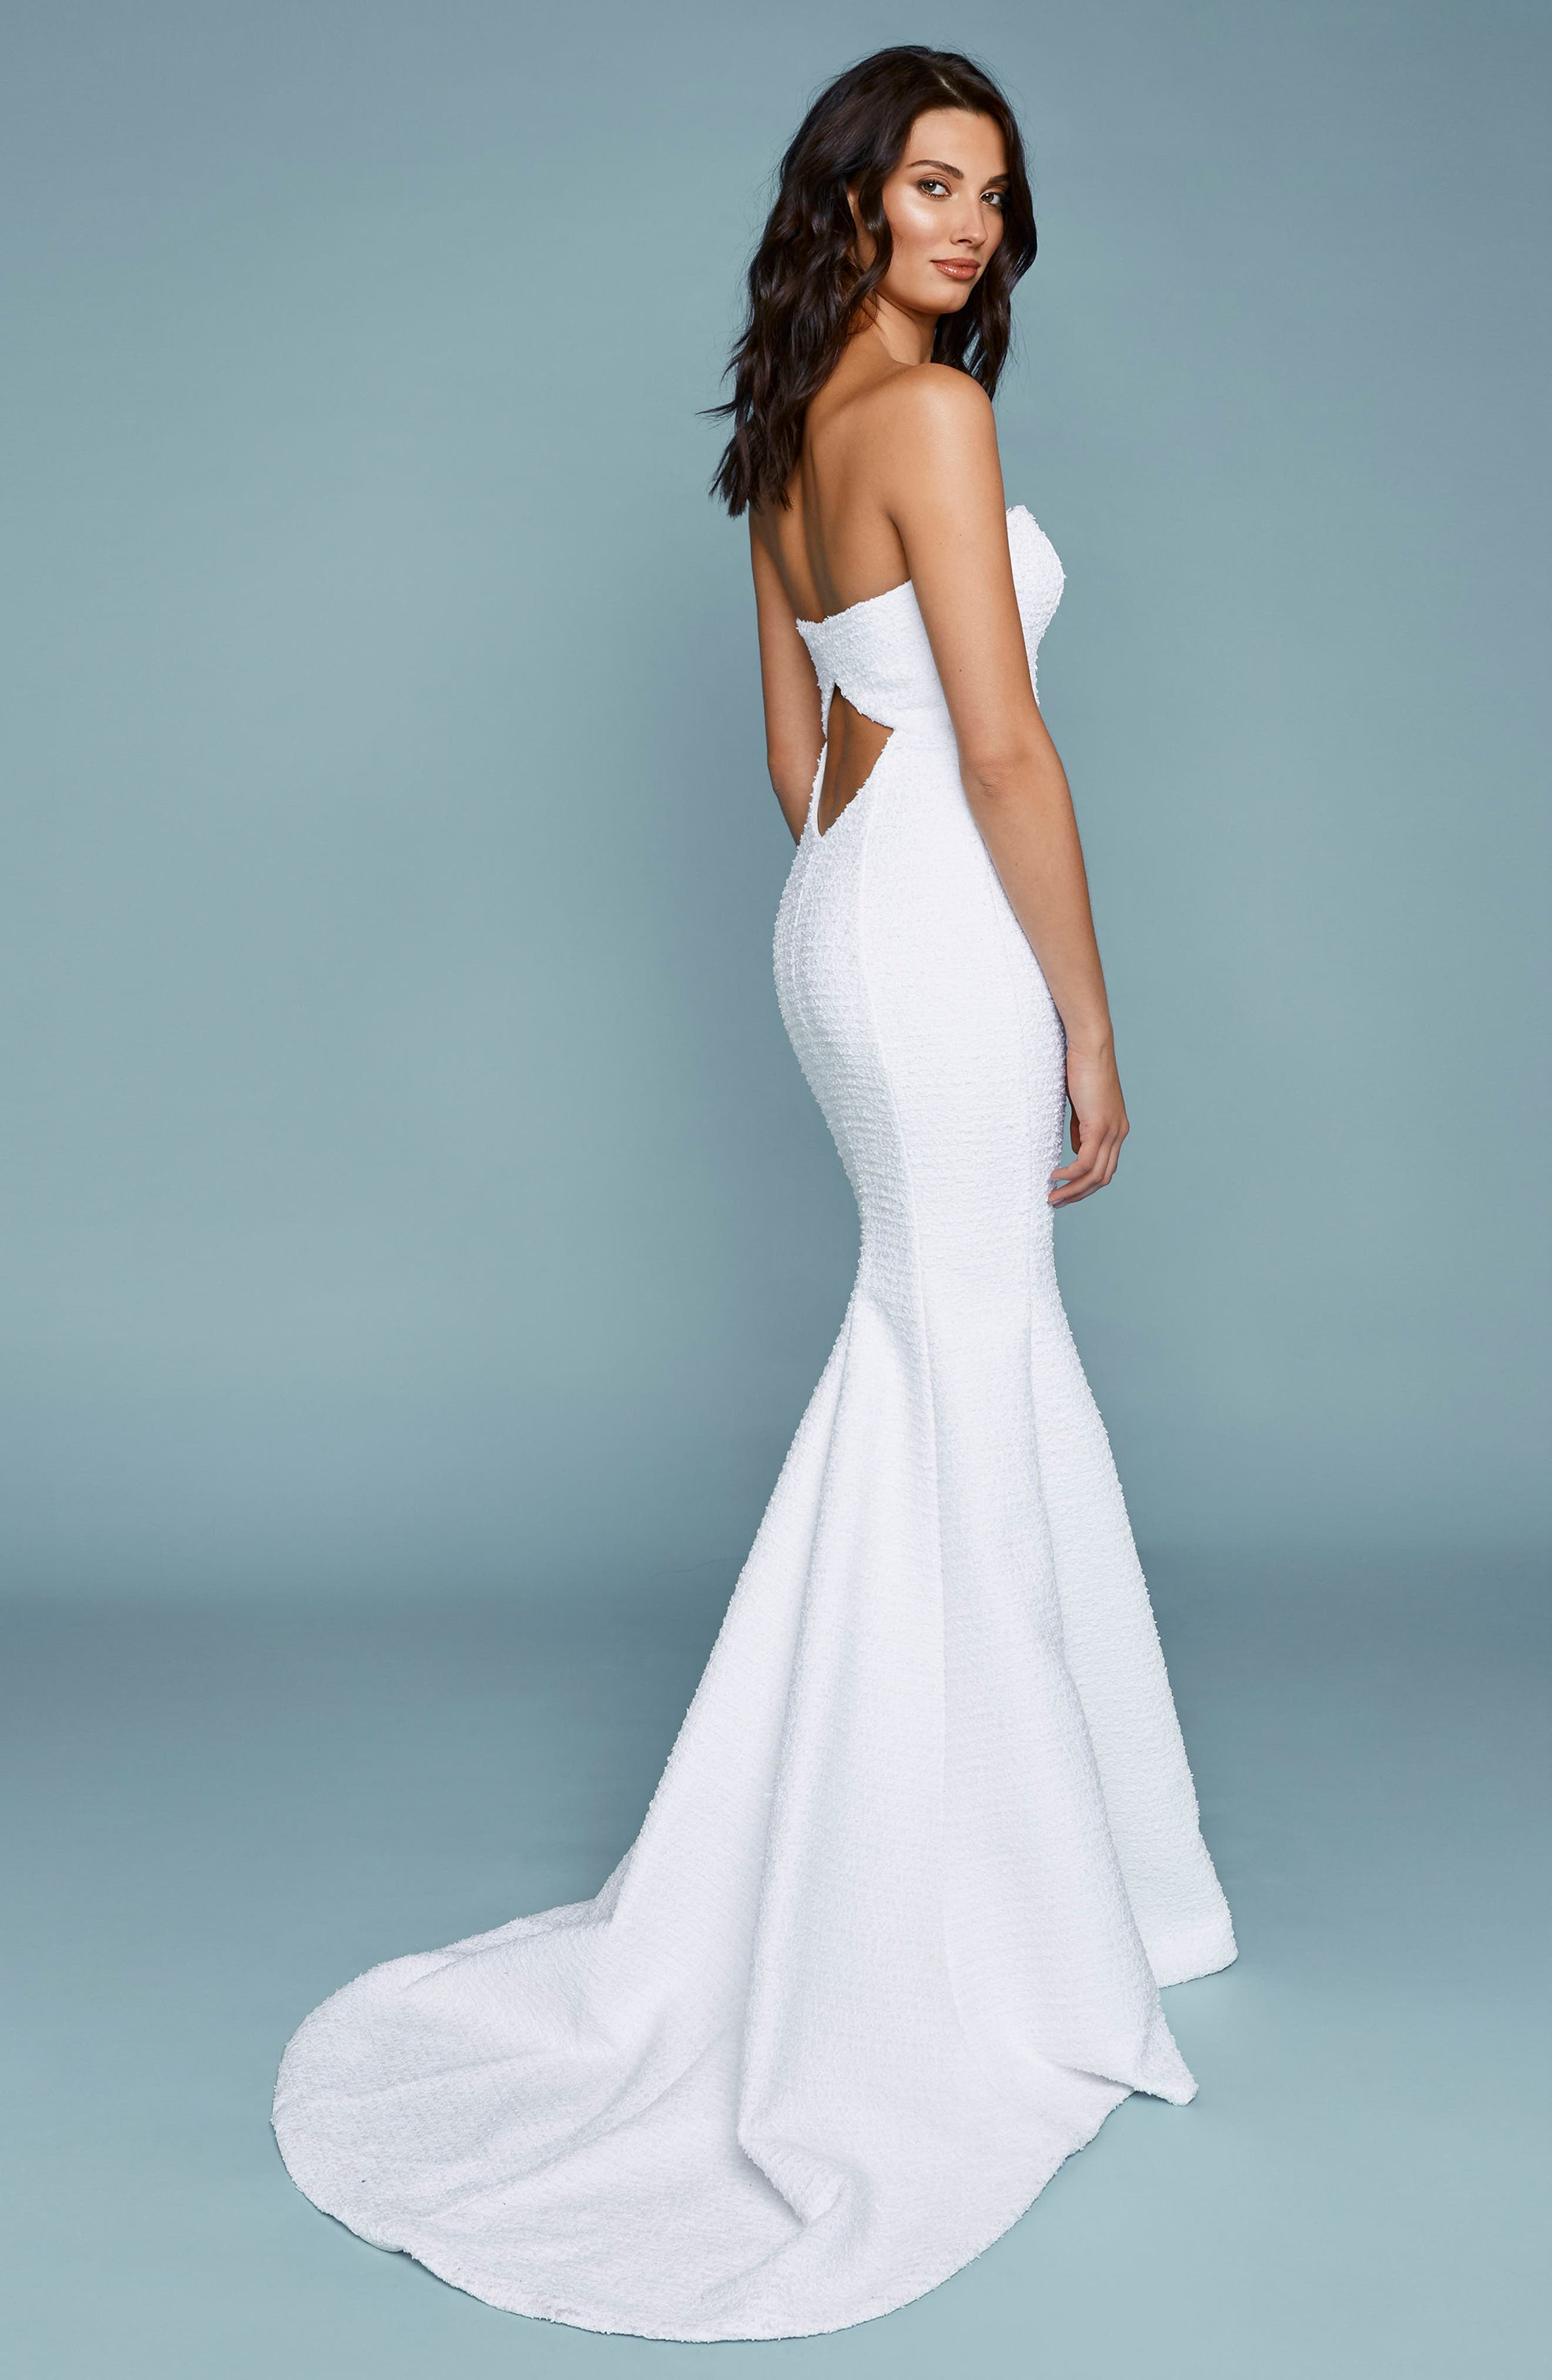 Positano Strapless French Tweed Mermaid Gown,                             Alternate thumbnail 2, color,                             IVORY